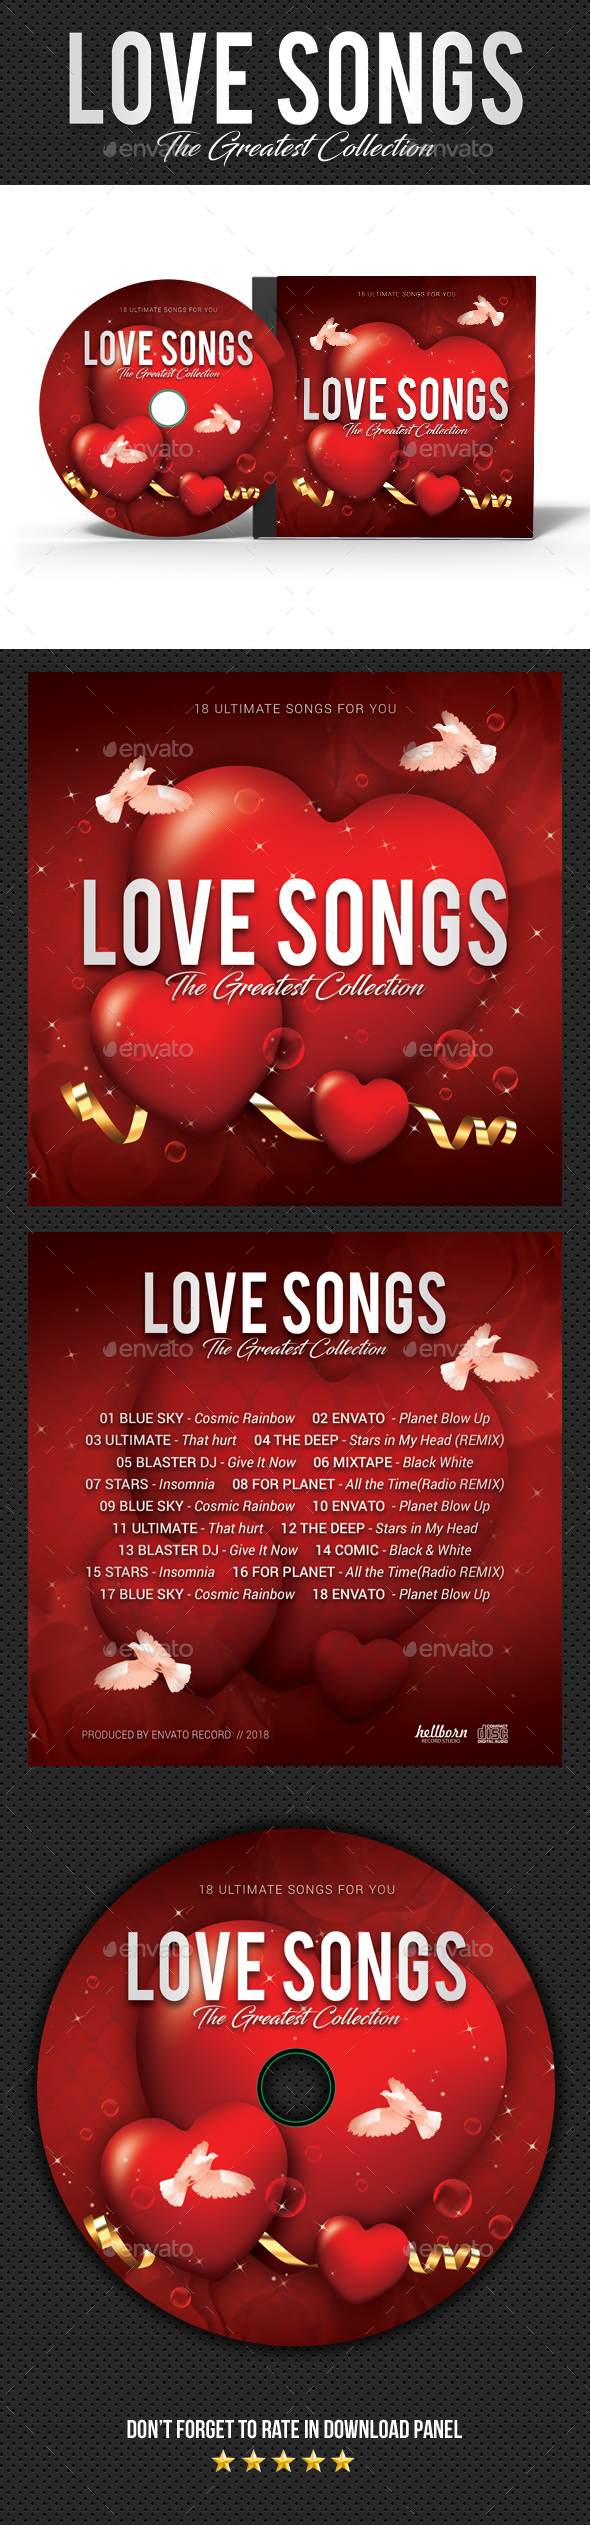 Love Songs CD Cover - CD & DVD Artwork Print Templates